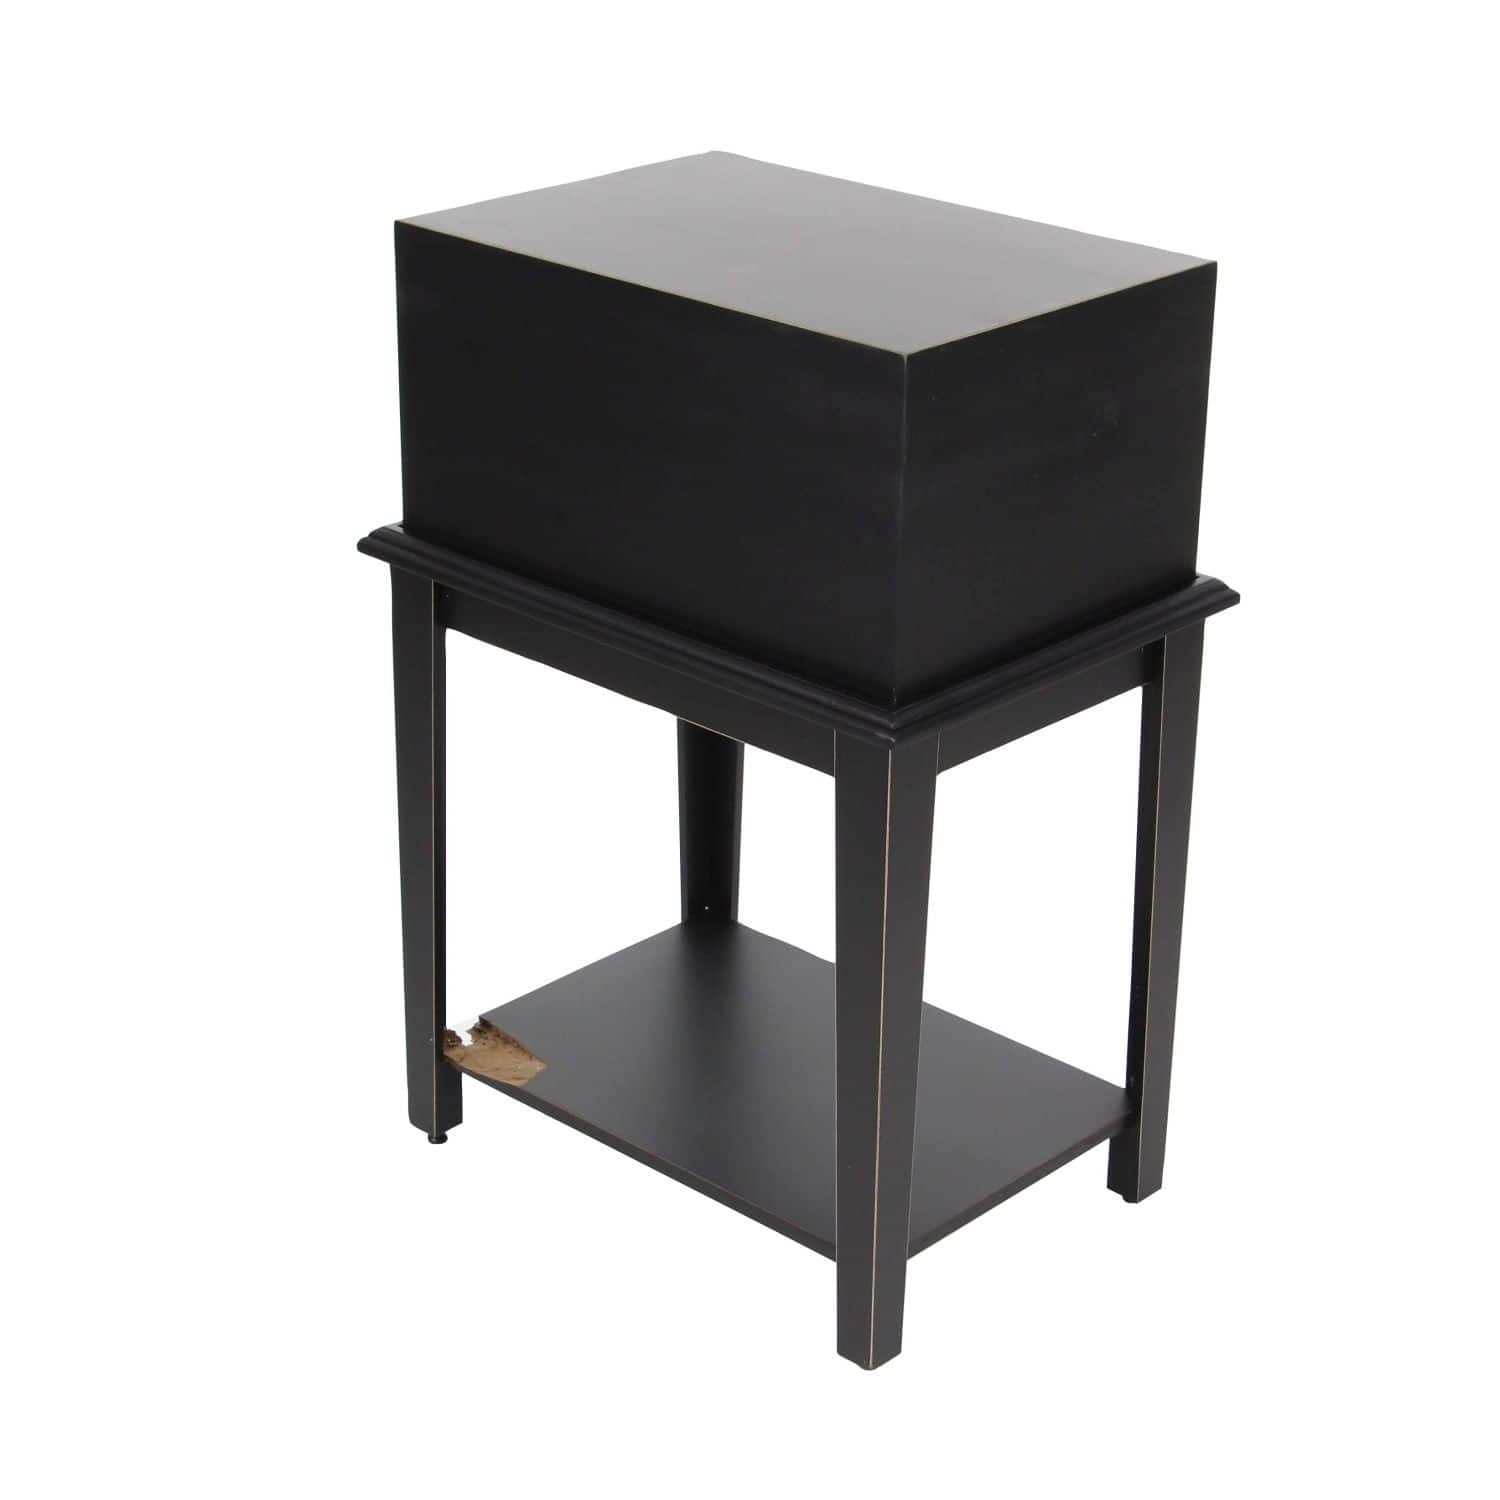 Coffee console sofa end tables for less for Sofa table higher than sofa